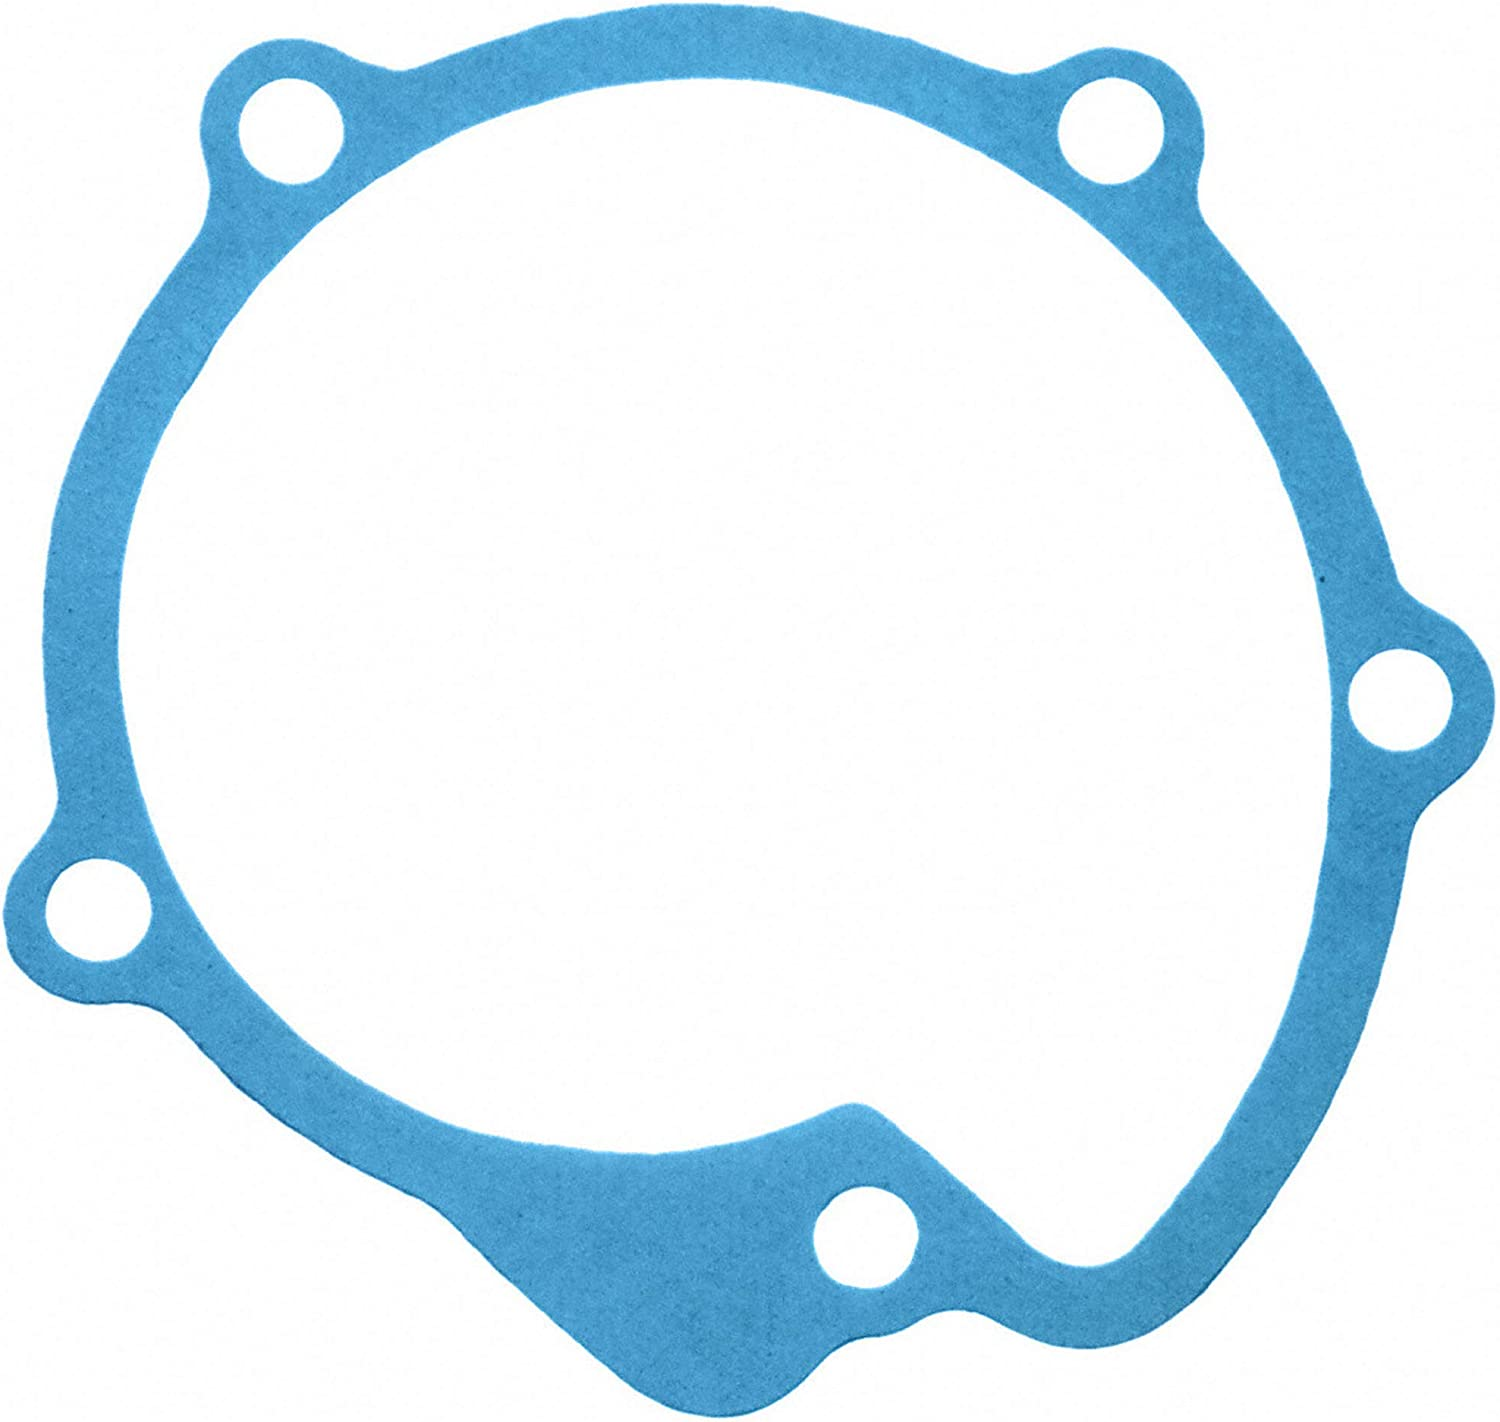 Fel-Pro 35229 Water New popularity Pump Set Gasket Quality inspection